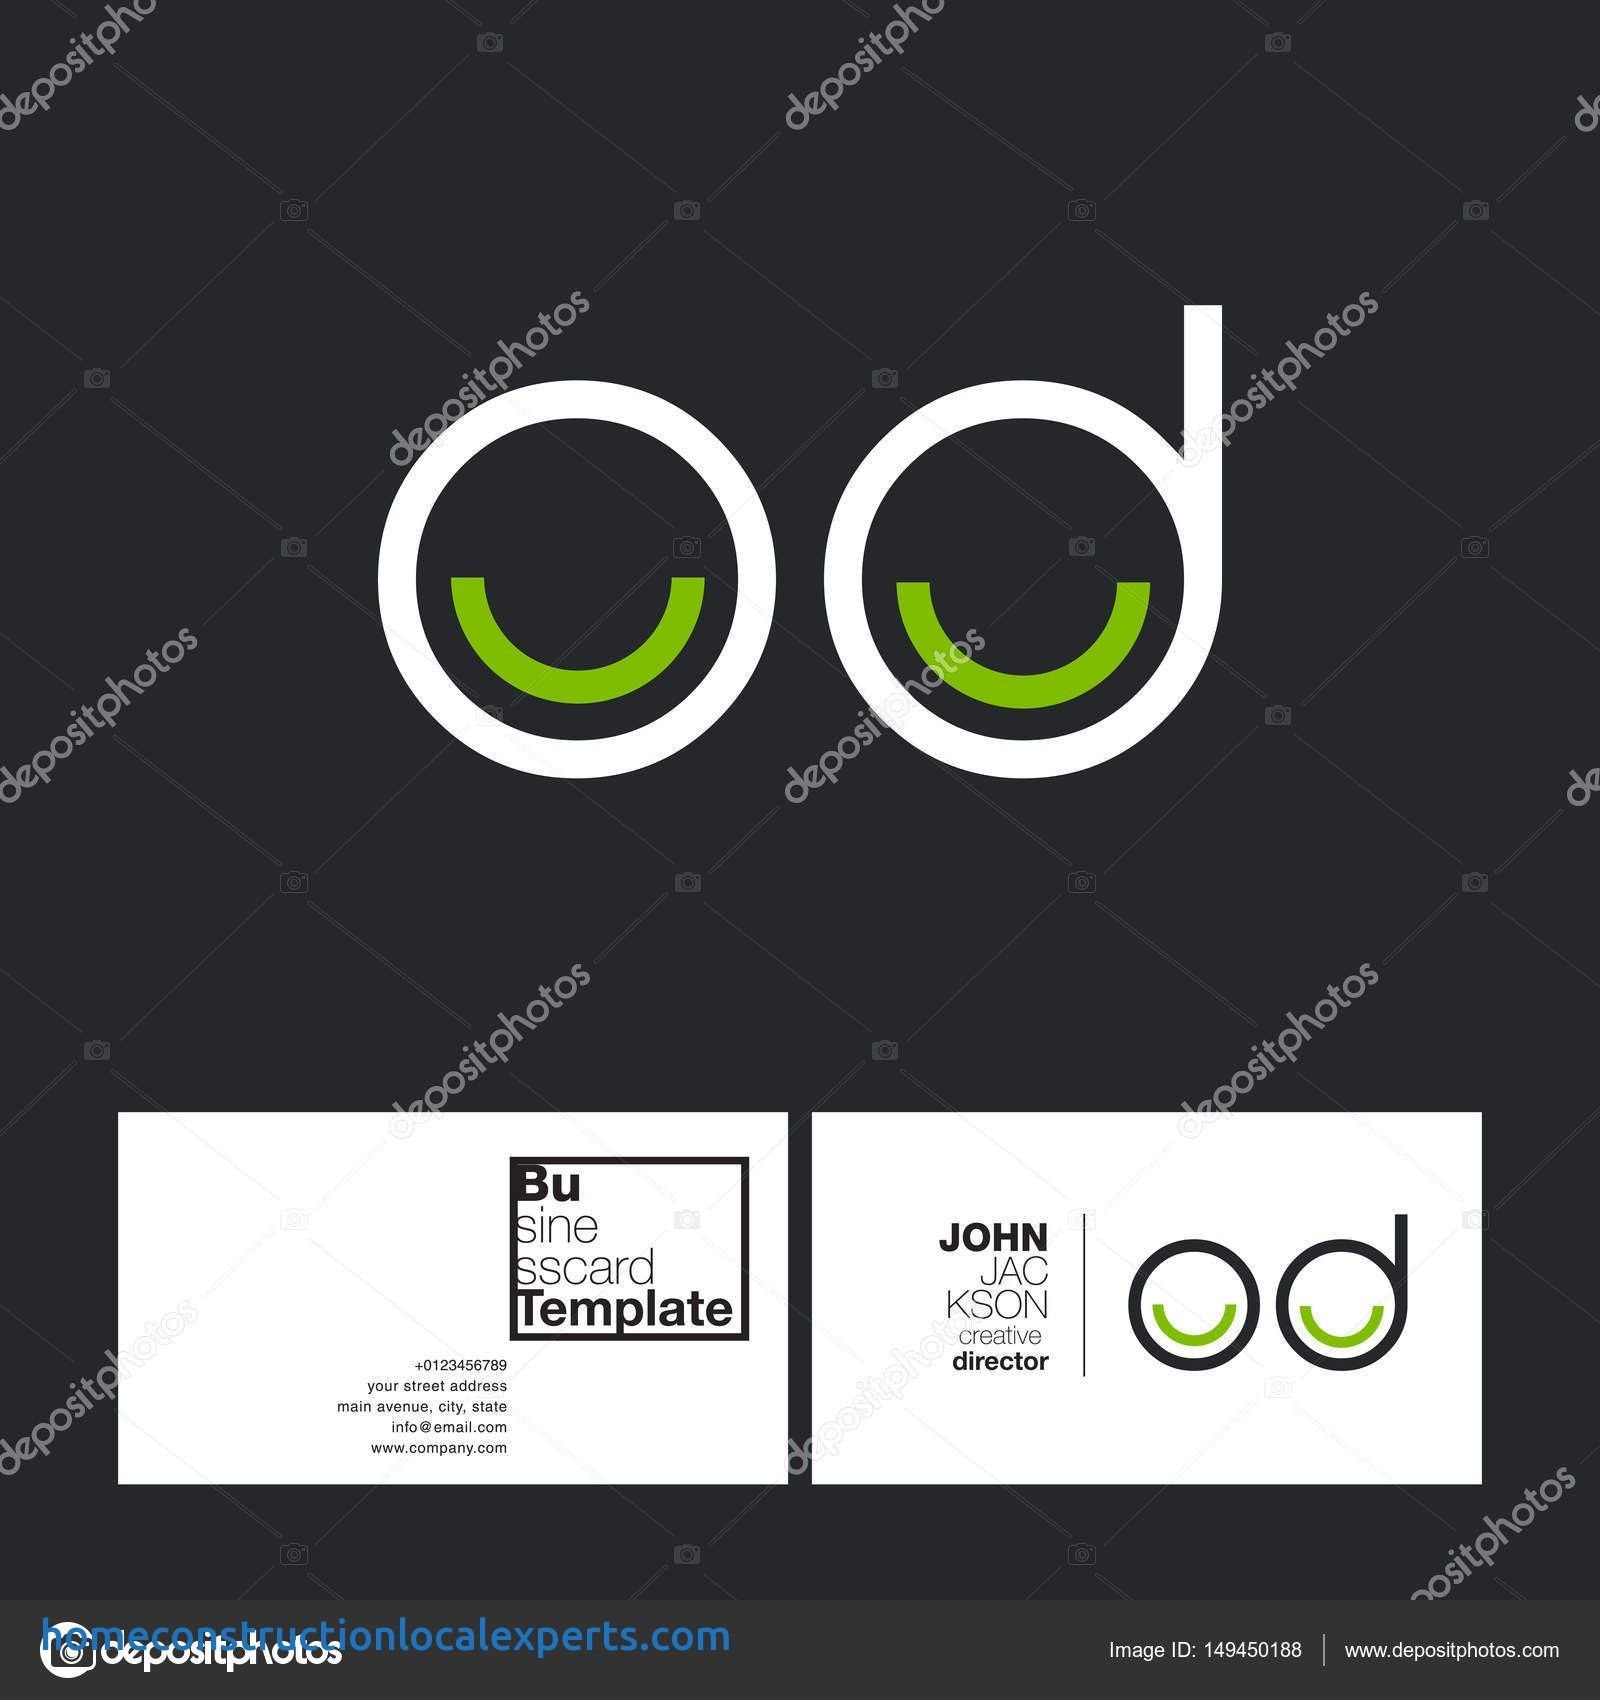 2 Sided Business Card Template Word In 2020